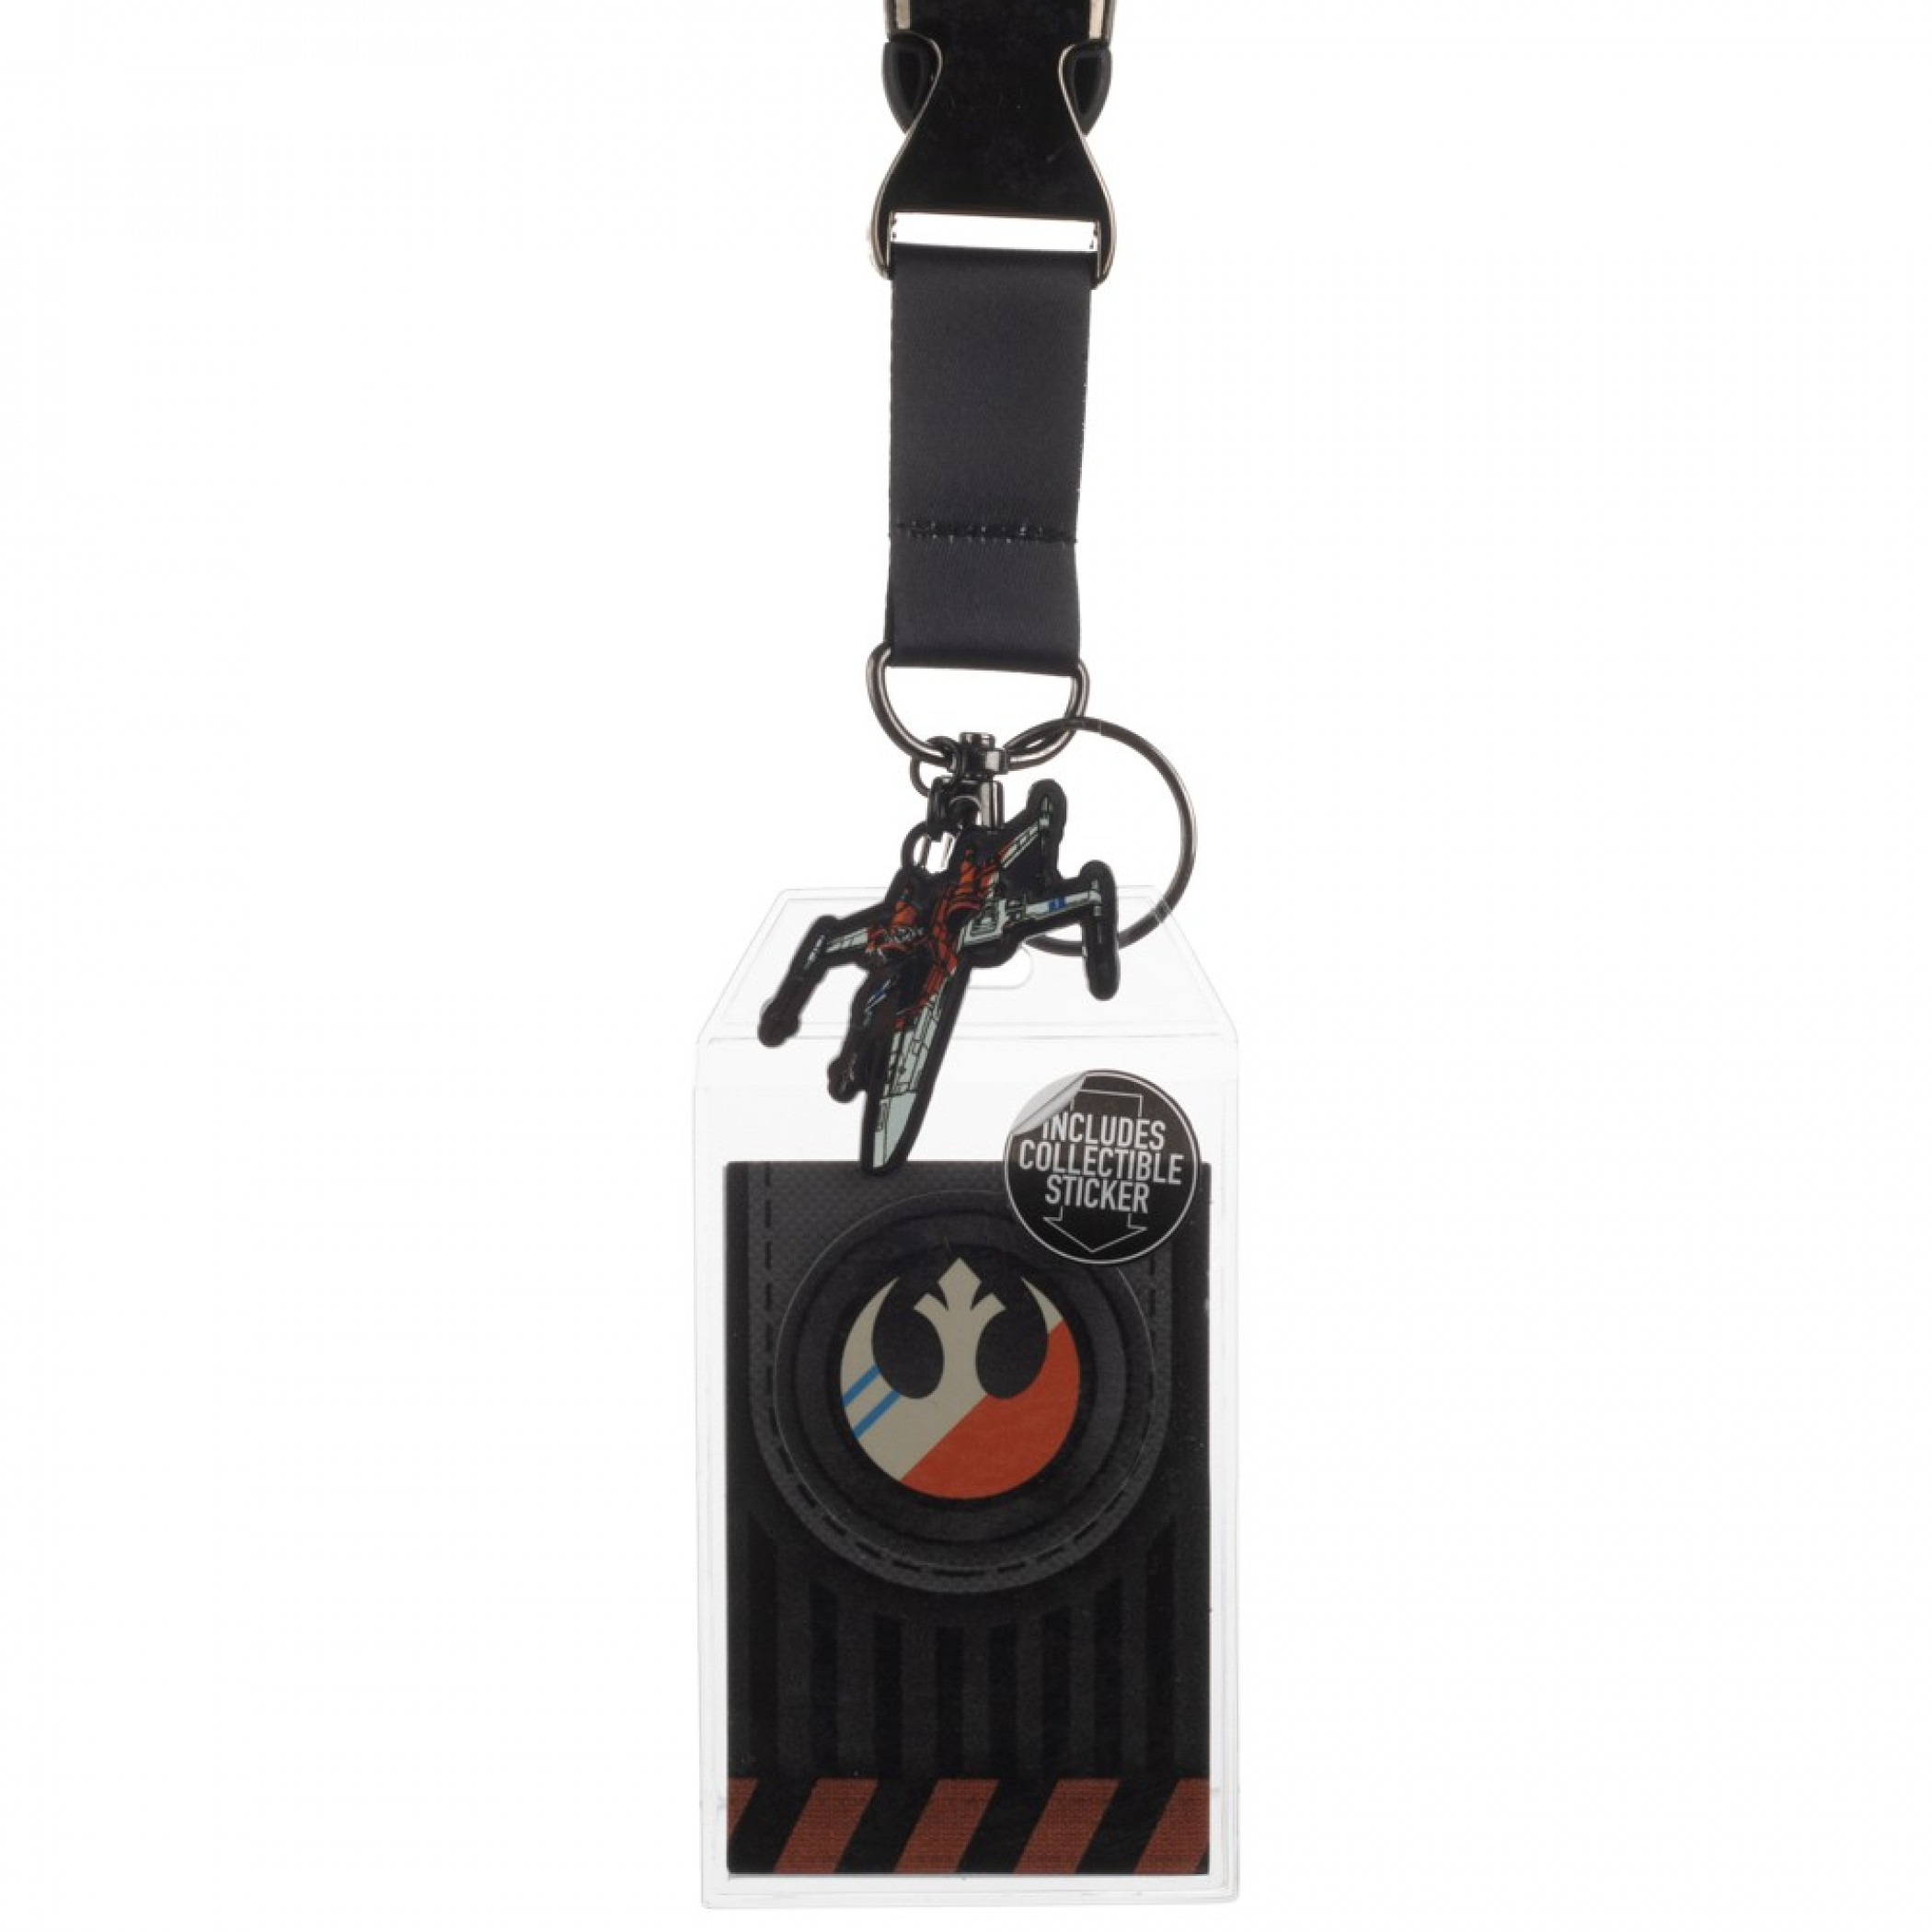 Star Wars Episode 9 X-Wing Fighter Suit Up Lanyard